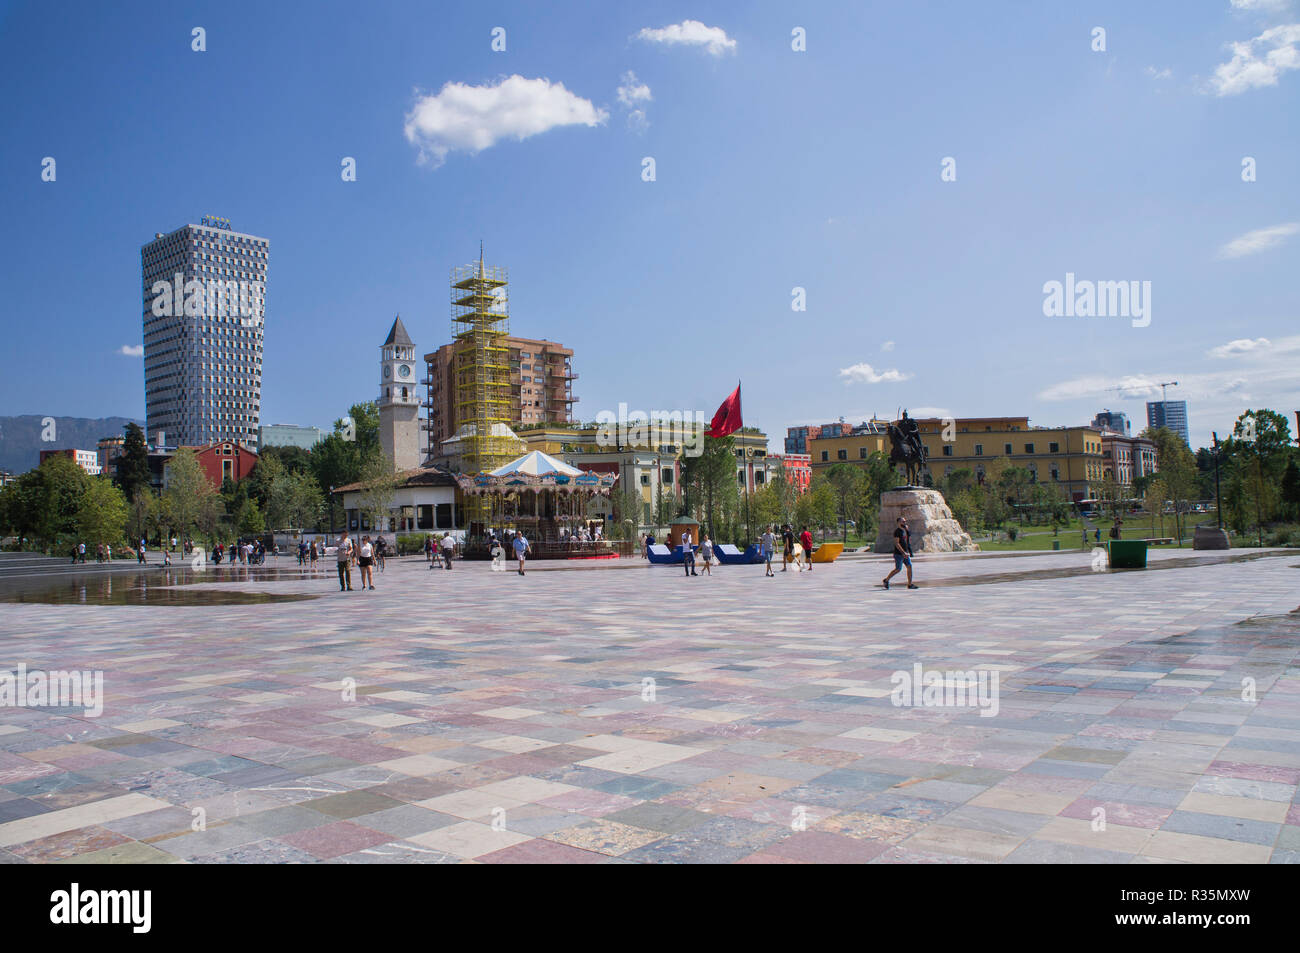 The Plaza Tirana hotel, Clock Tower, Hadji Et'hem Bey Mosque, old-fashioned style carousel, Skanderbeg equestrian statue in Skanderbeg Square in Tiran - Stock Image